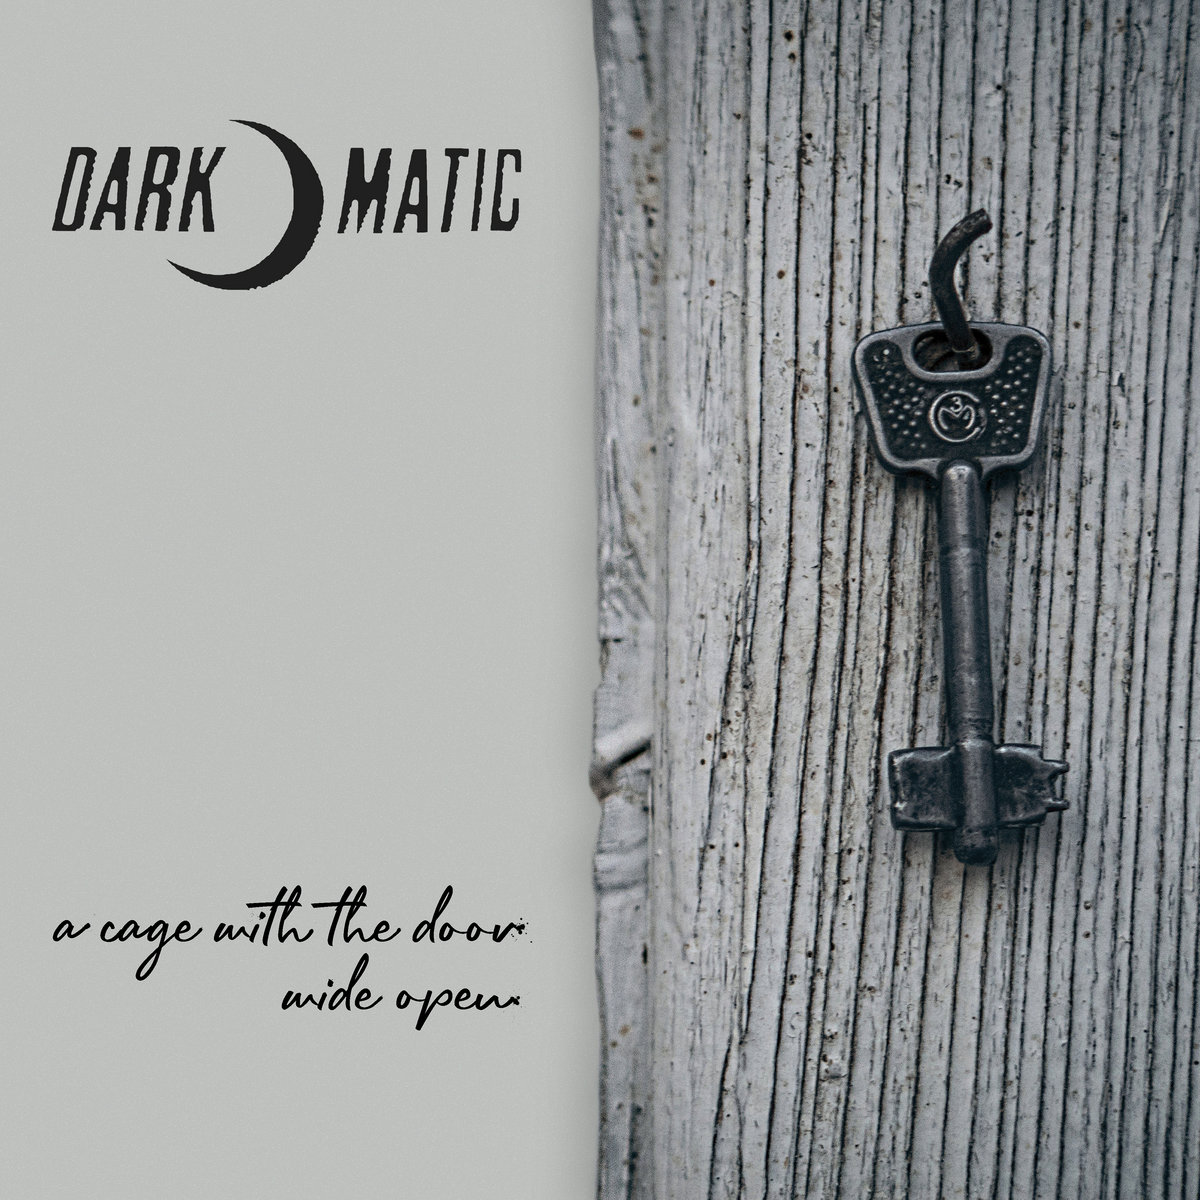 Electro News @ – Dark-o-matic – A Cage With Door Wide Open